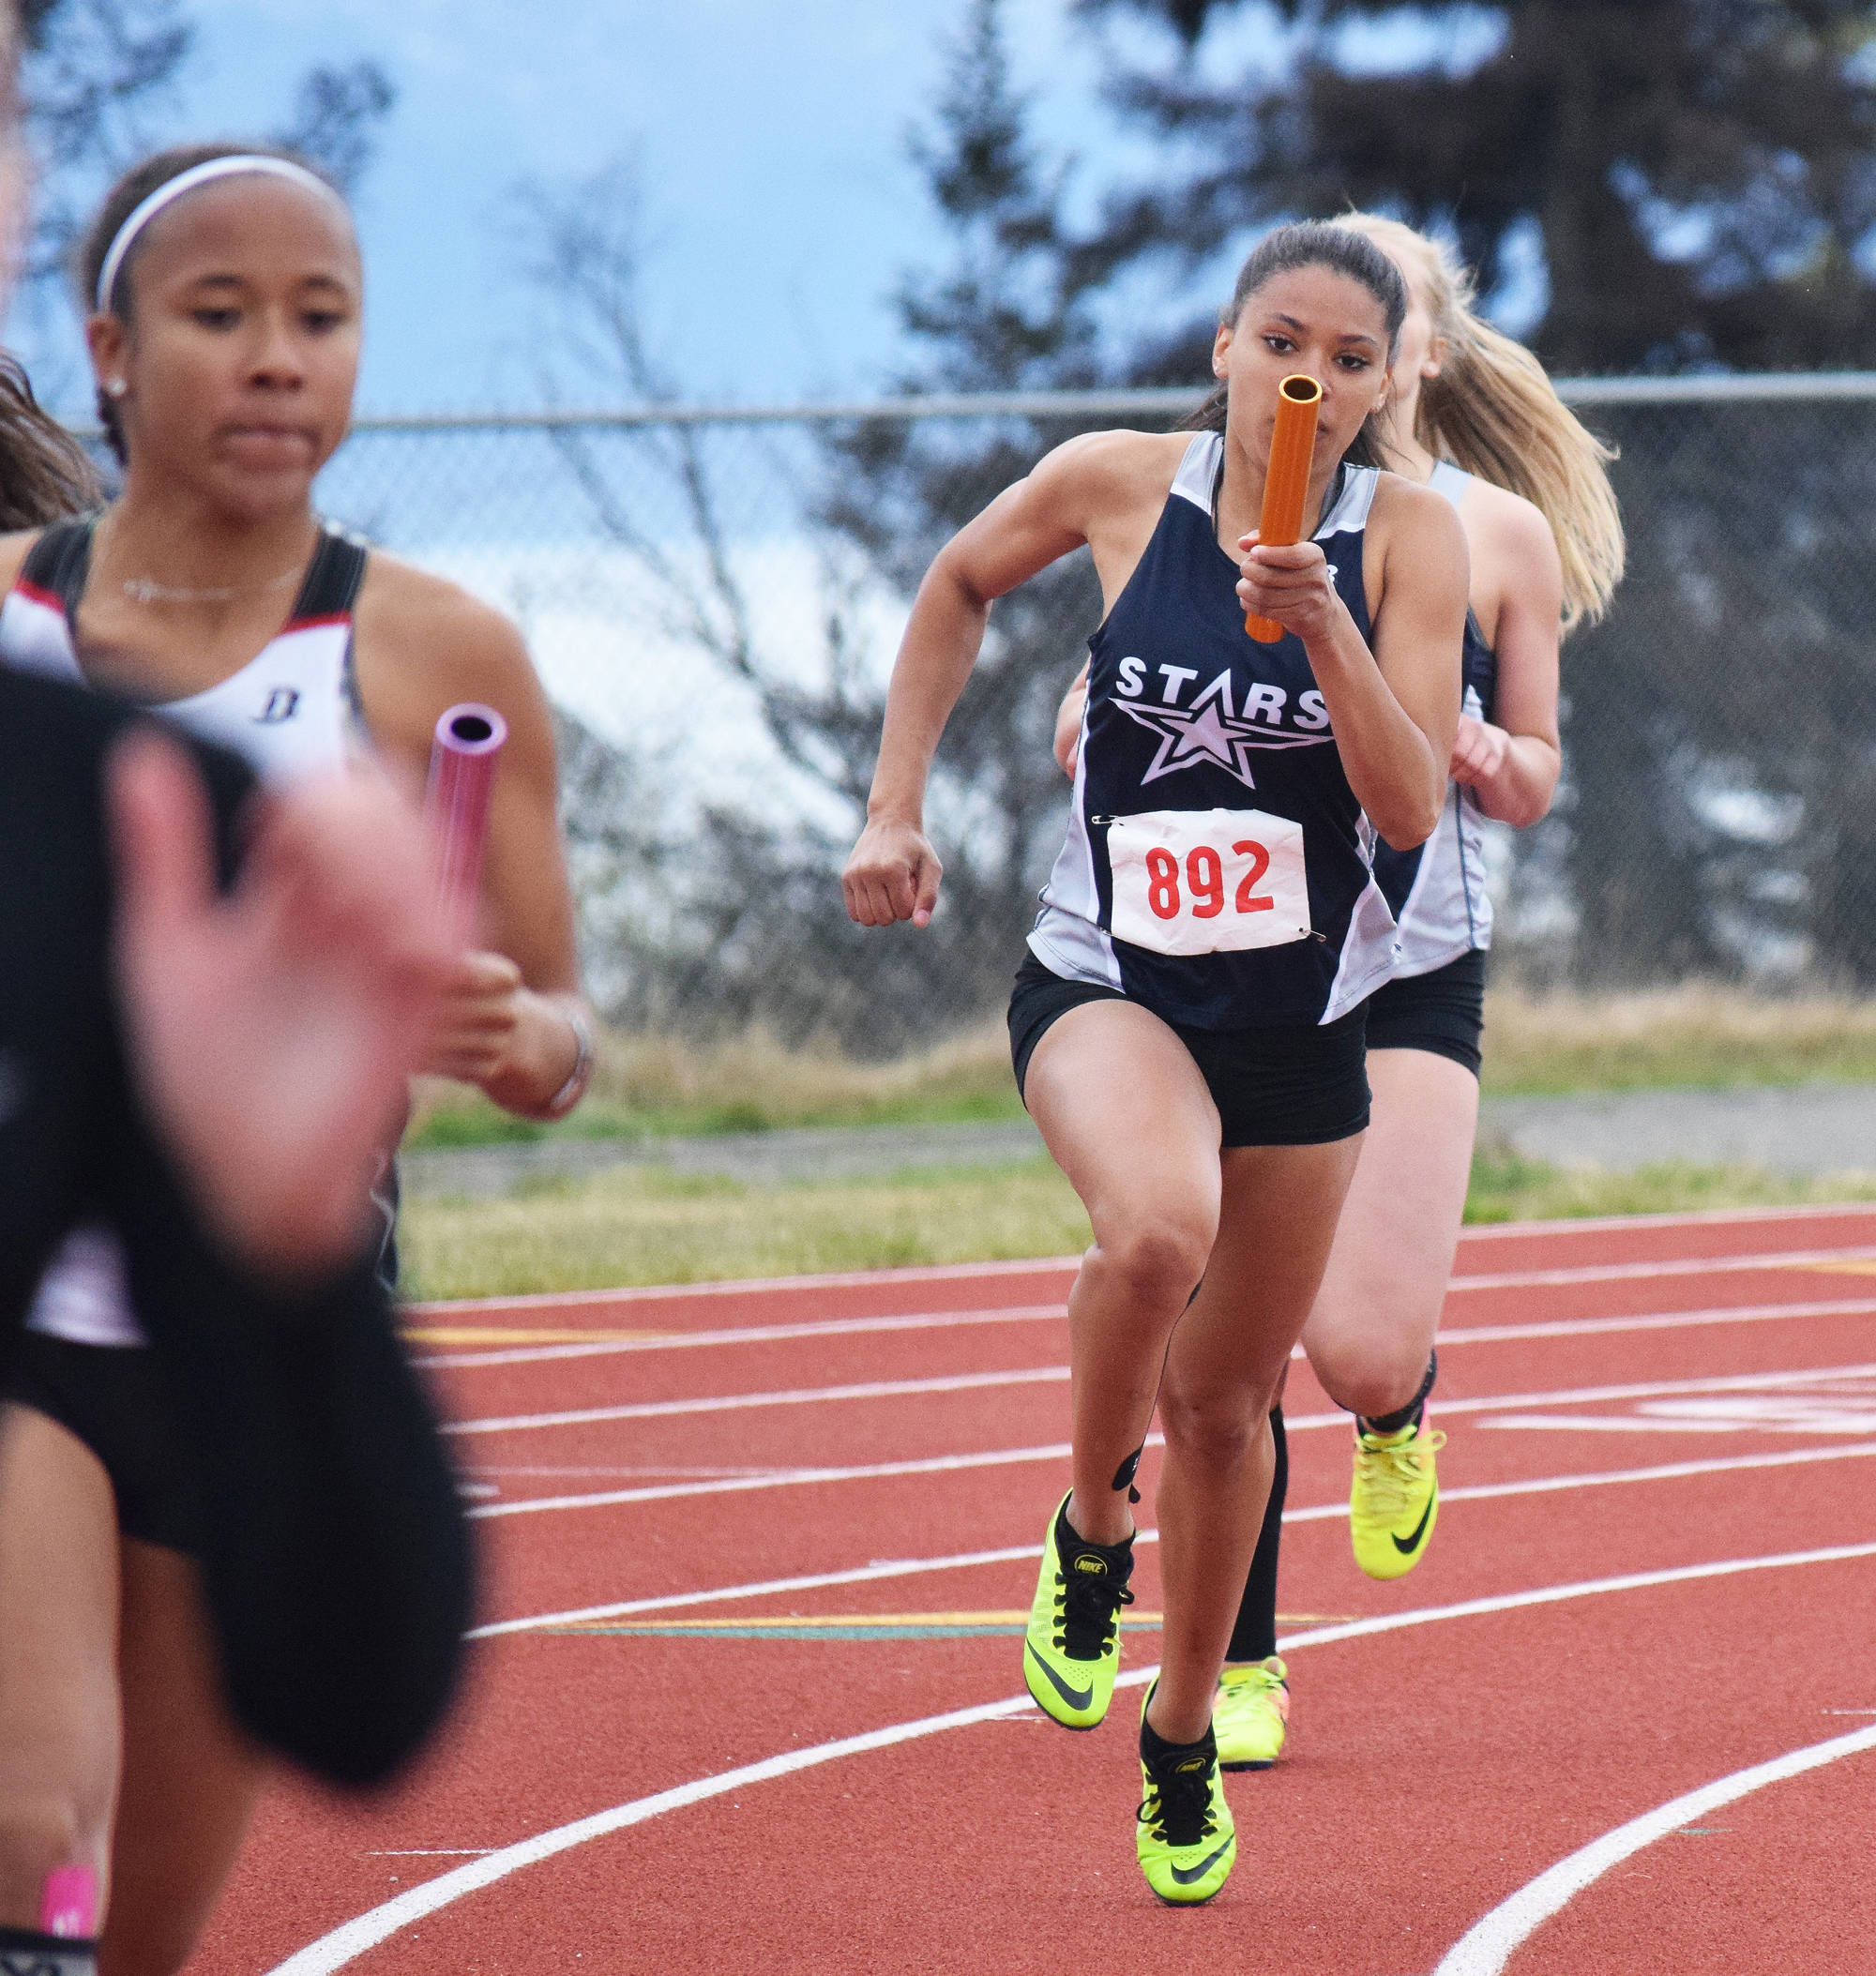 Soldotna's Brittany Taylor hands the baton off to teammate Tovia Bremond-Hilton in the Class 4A girls 800-meter relay Saturday at the Region III track & field championships in Homer. (Photo by Joey Klecka/Peninsula Clarion)